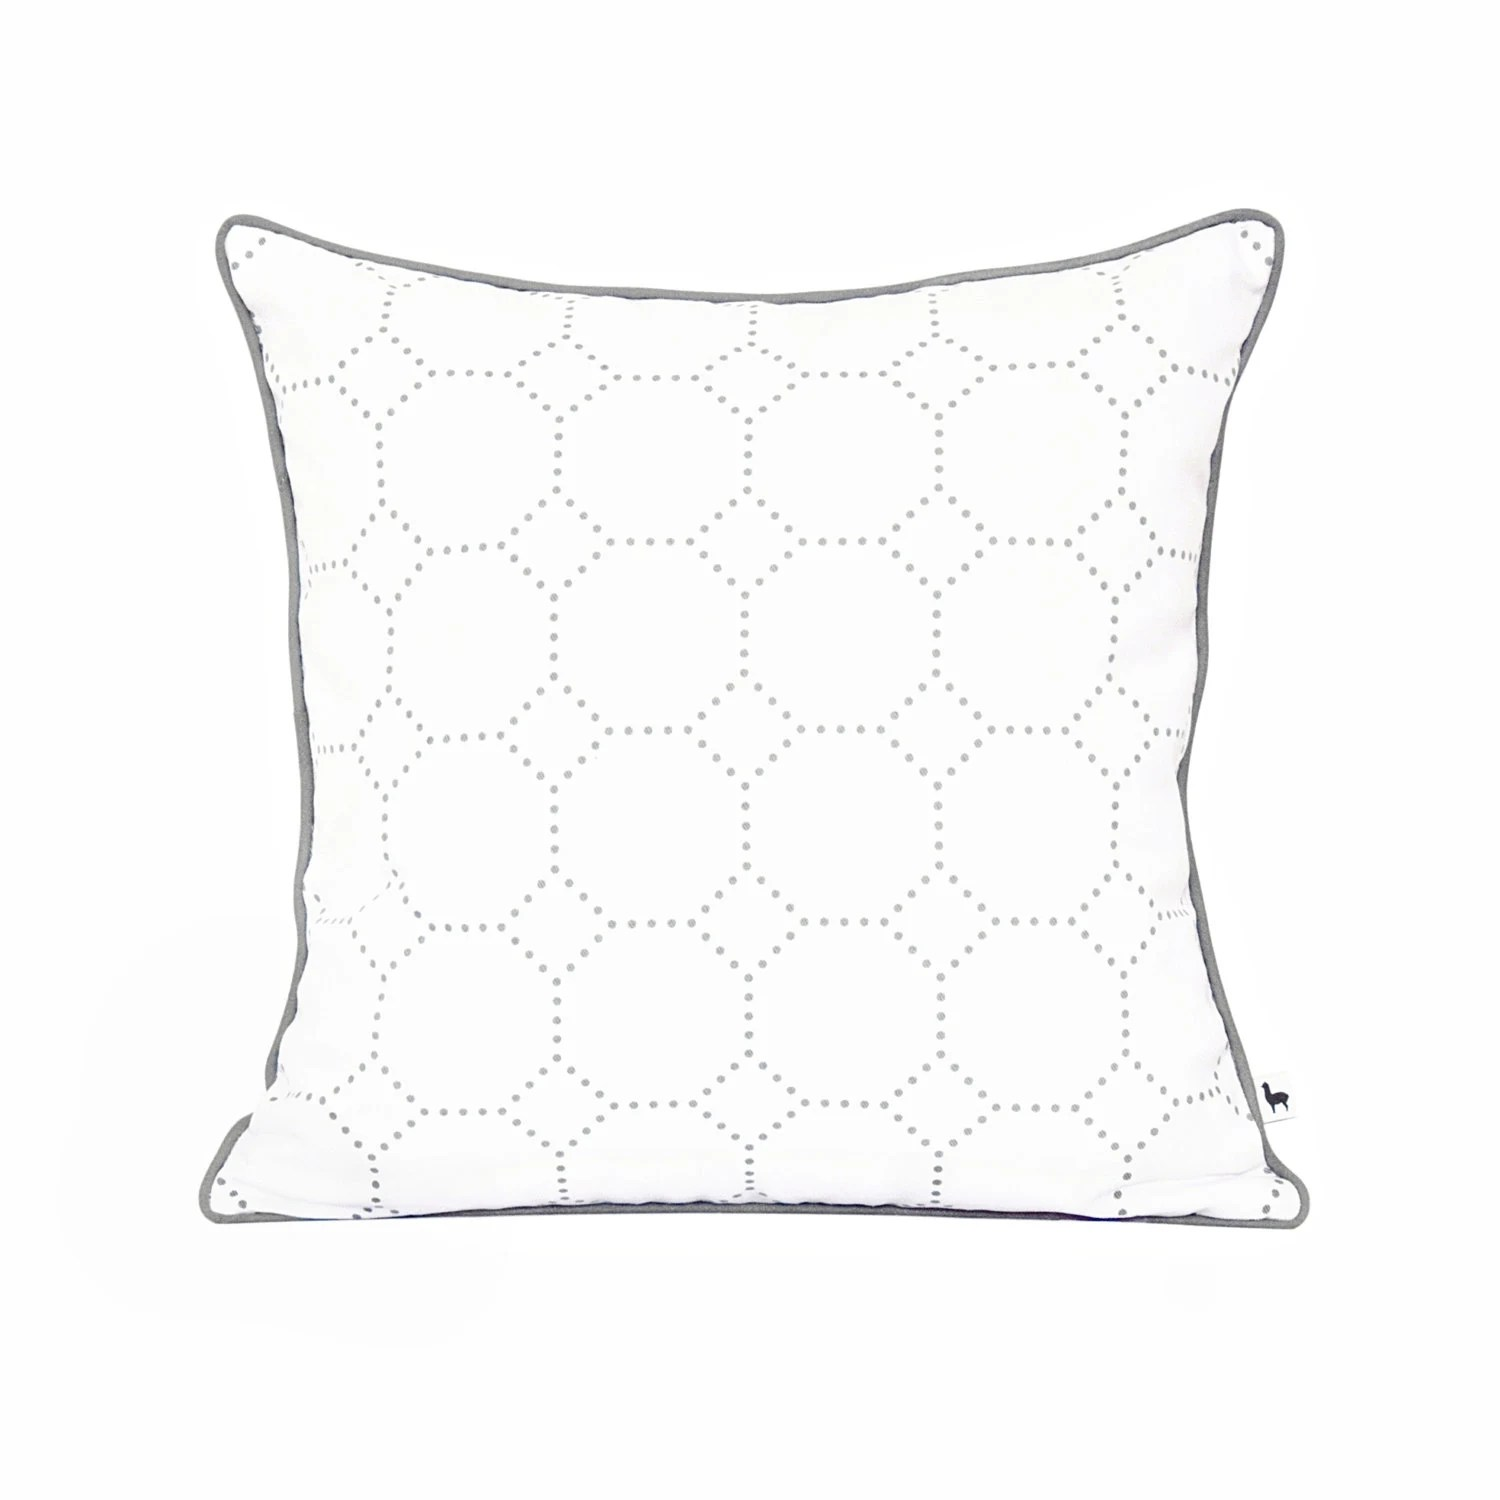 Popular items for octagon pattern on Etsy